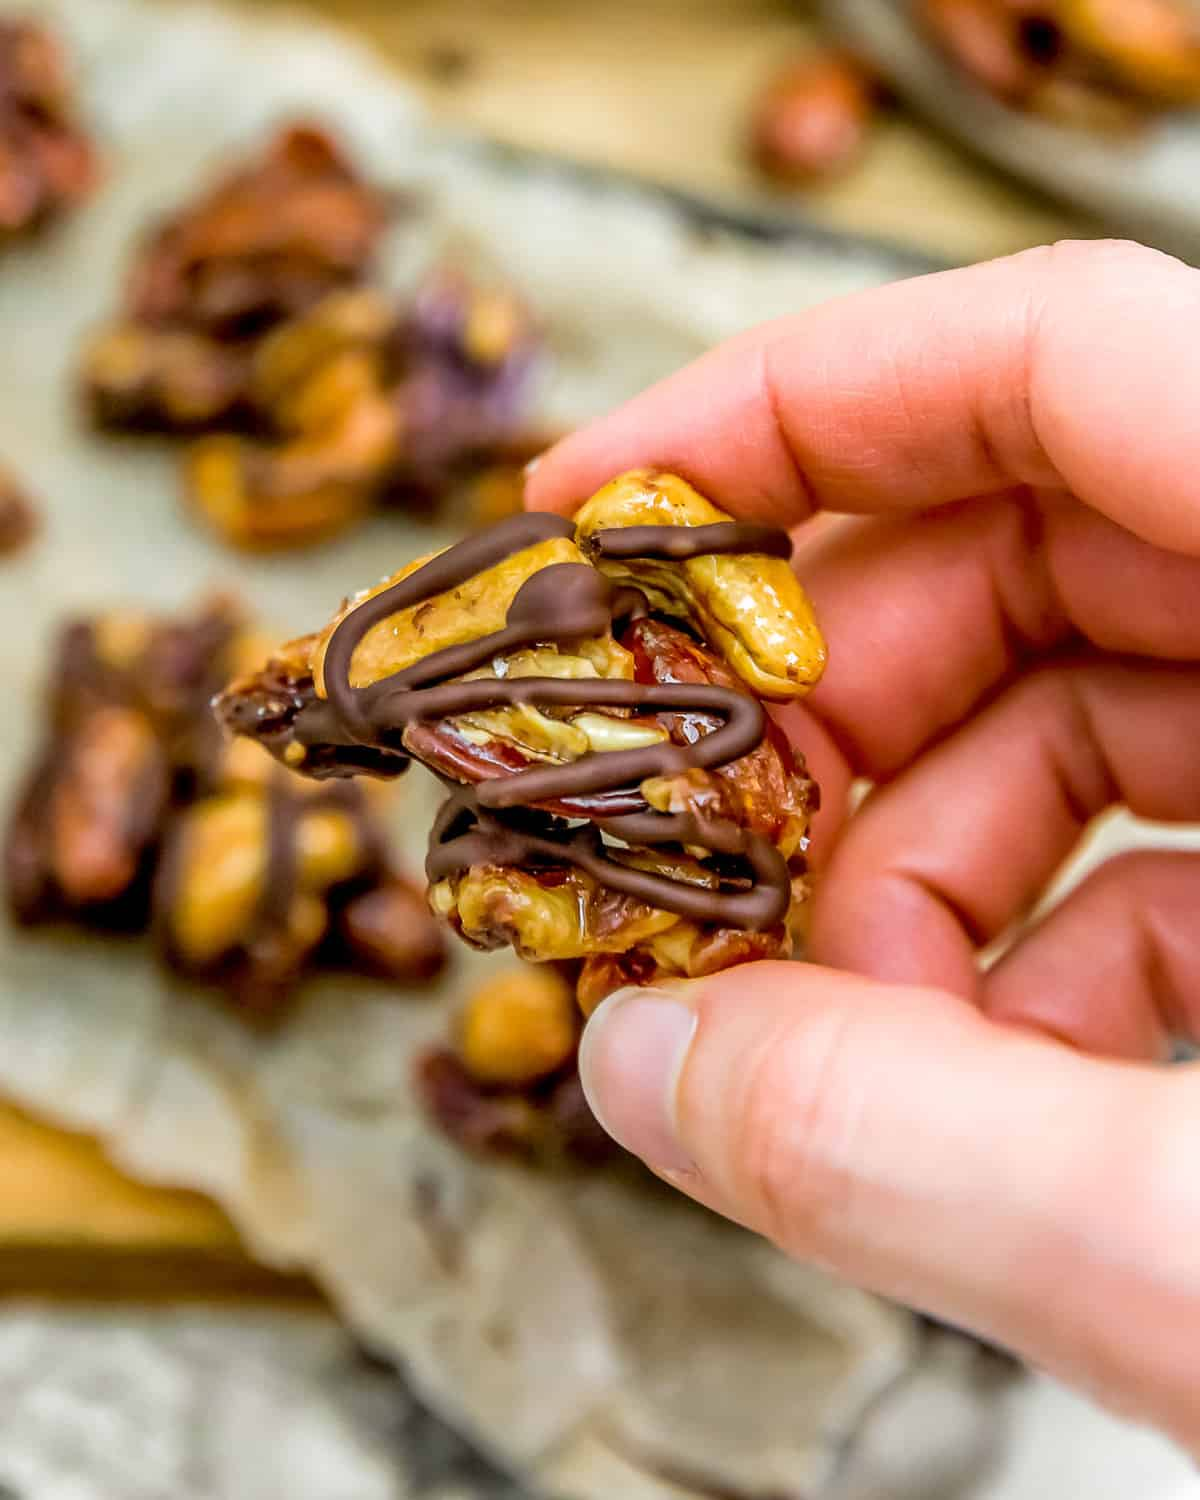 Holding Maple Glazed Nut Cluster